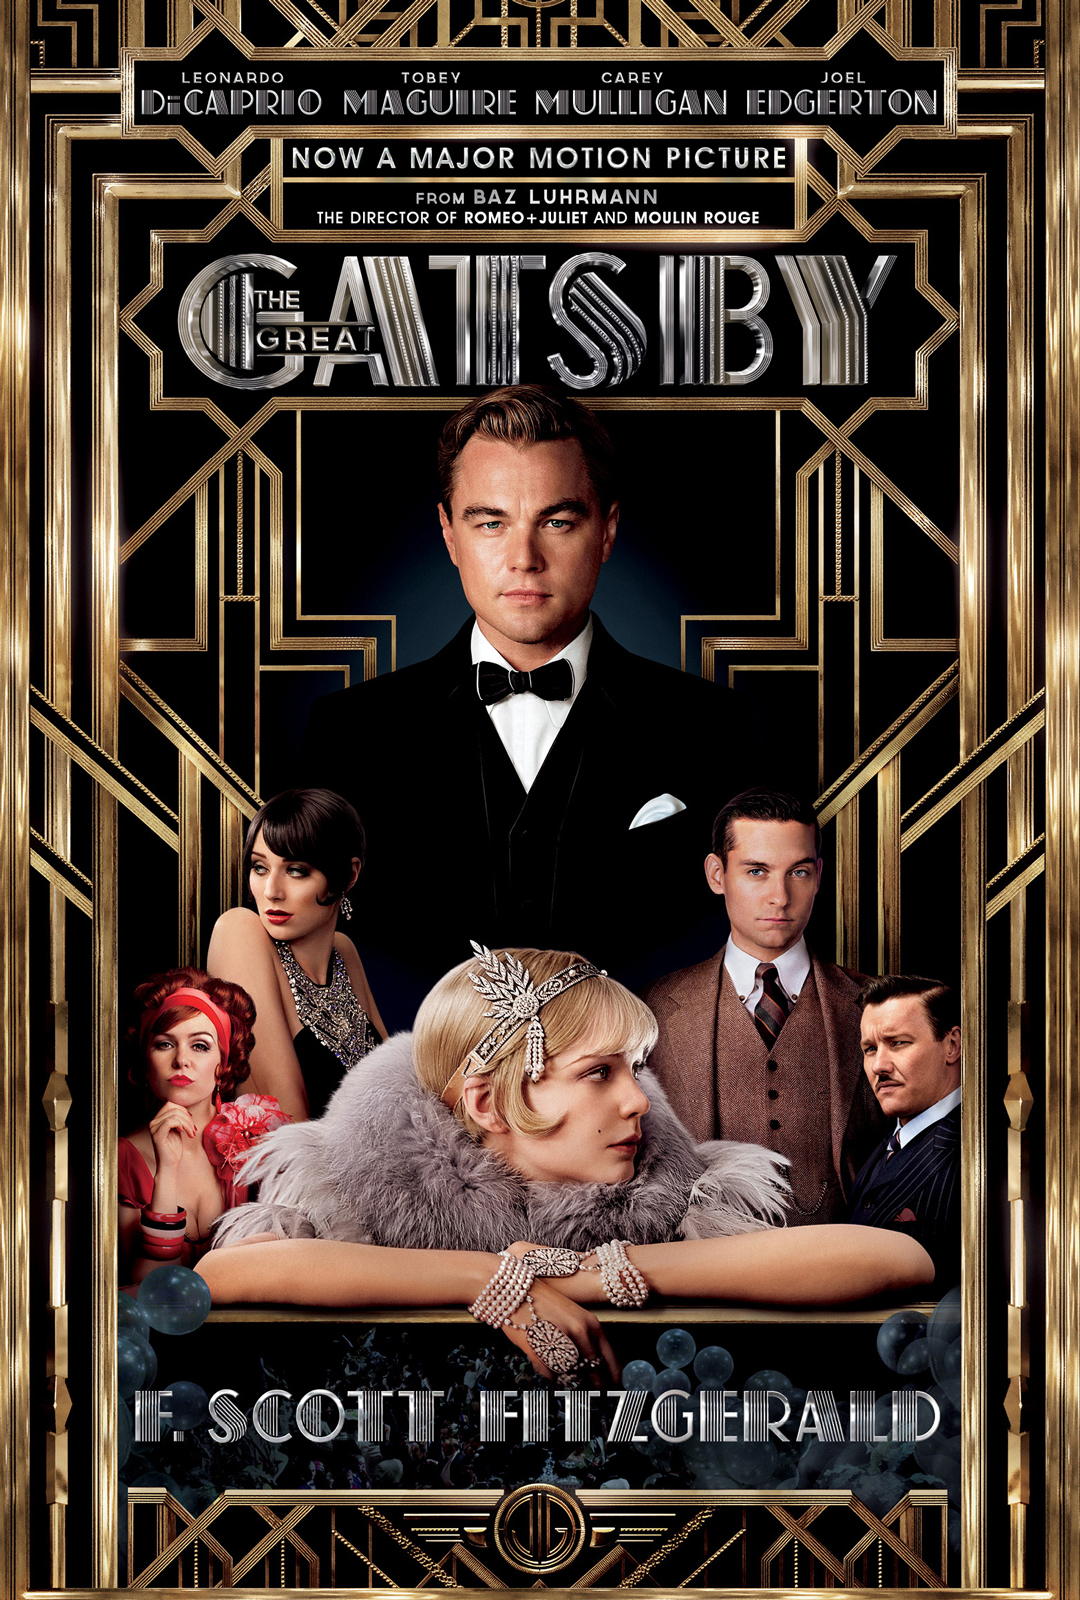 oz great gatsby 2013